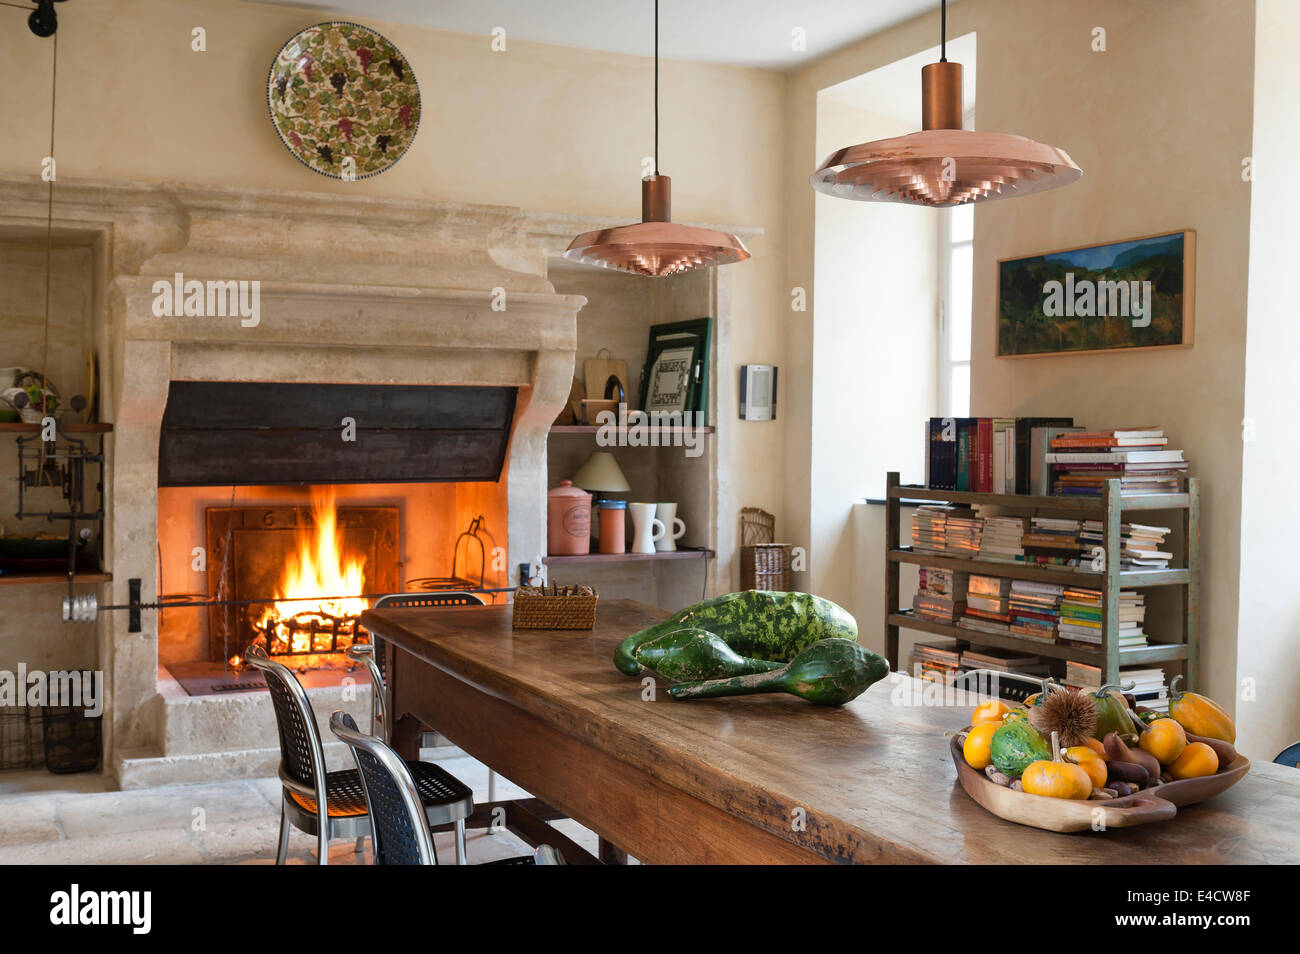 Provencal Kitchen With Large Stone Fireplace And Wooden Dining Table The Copper Pendant Lights Are